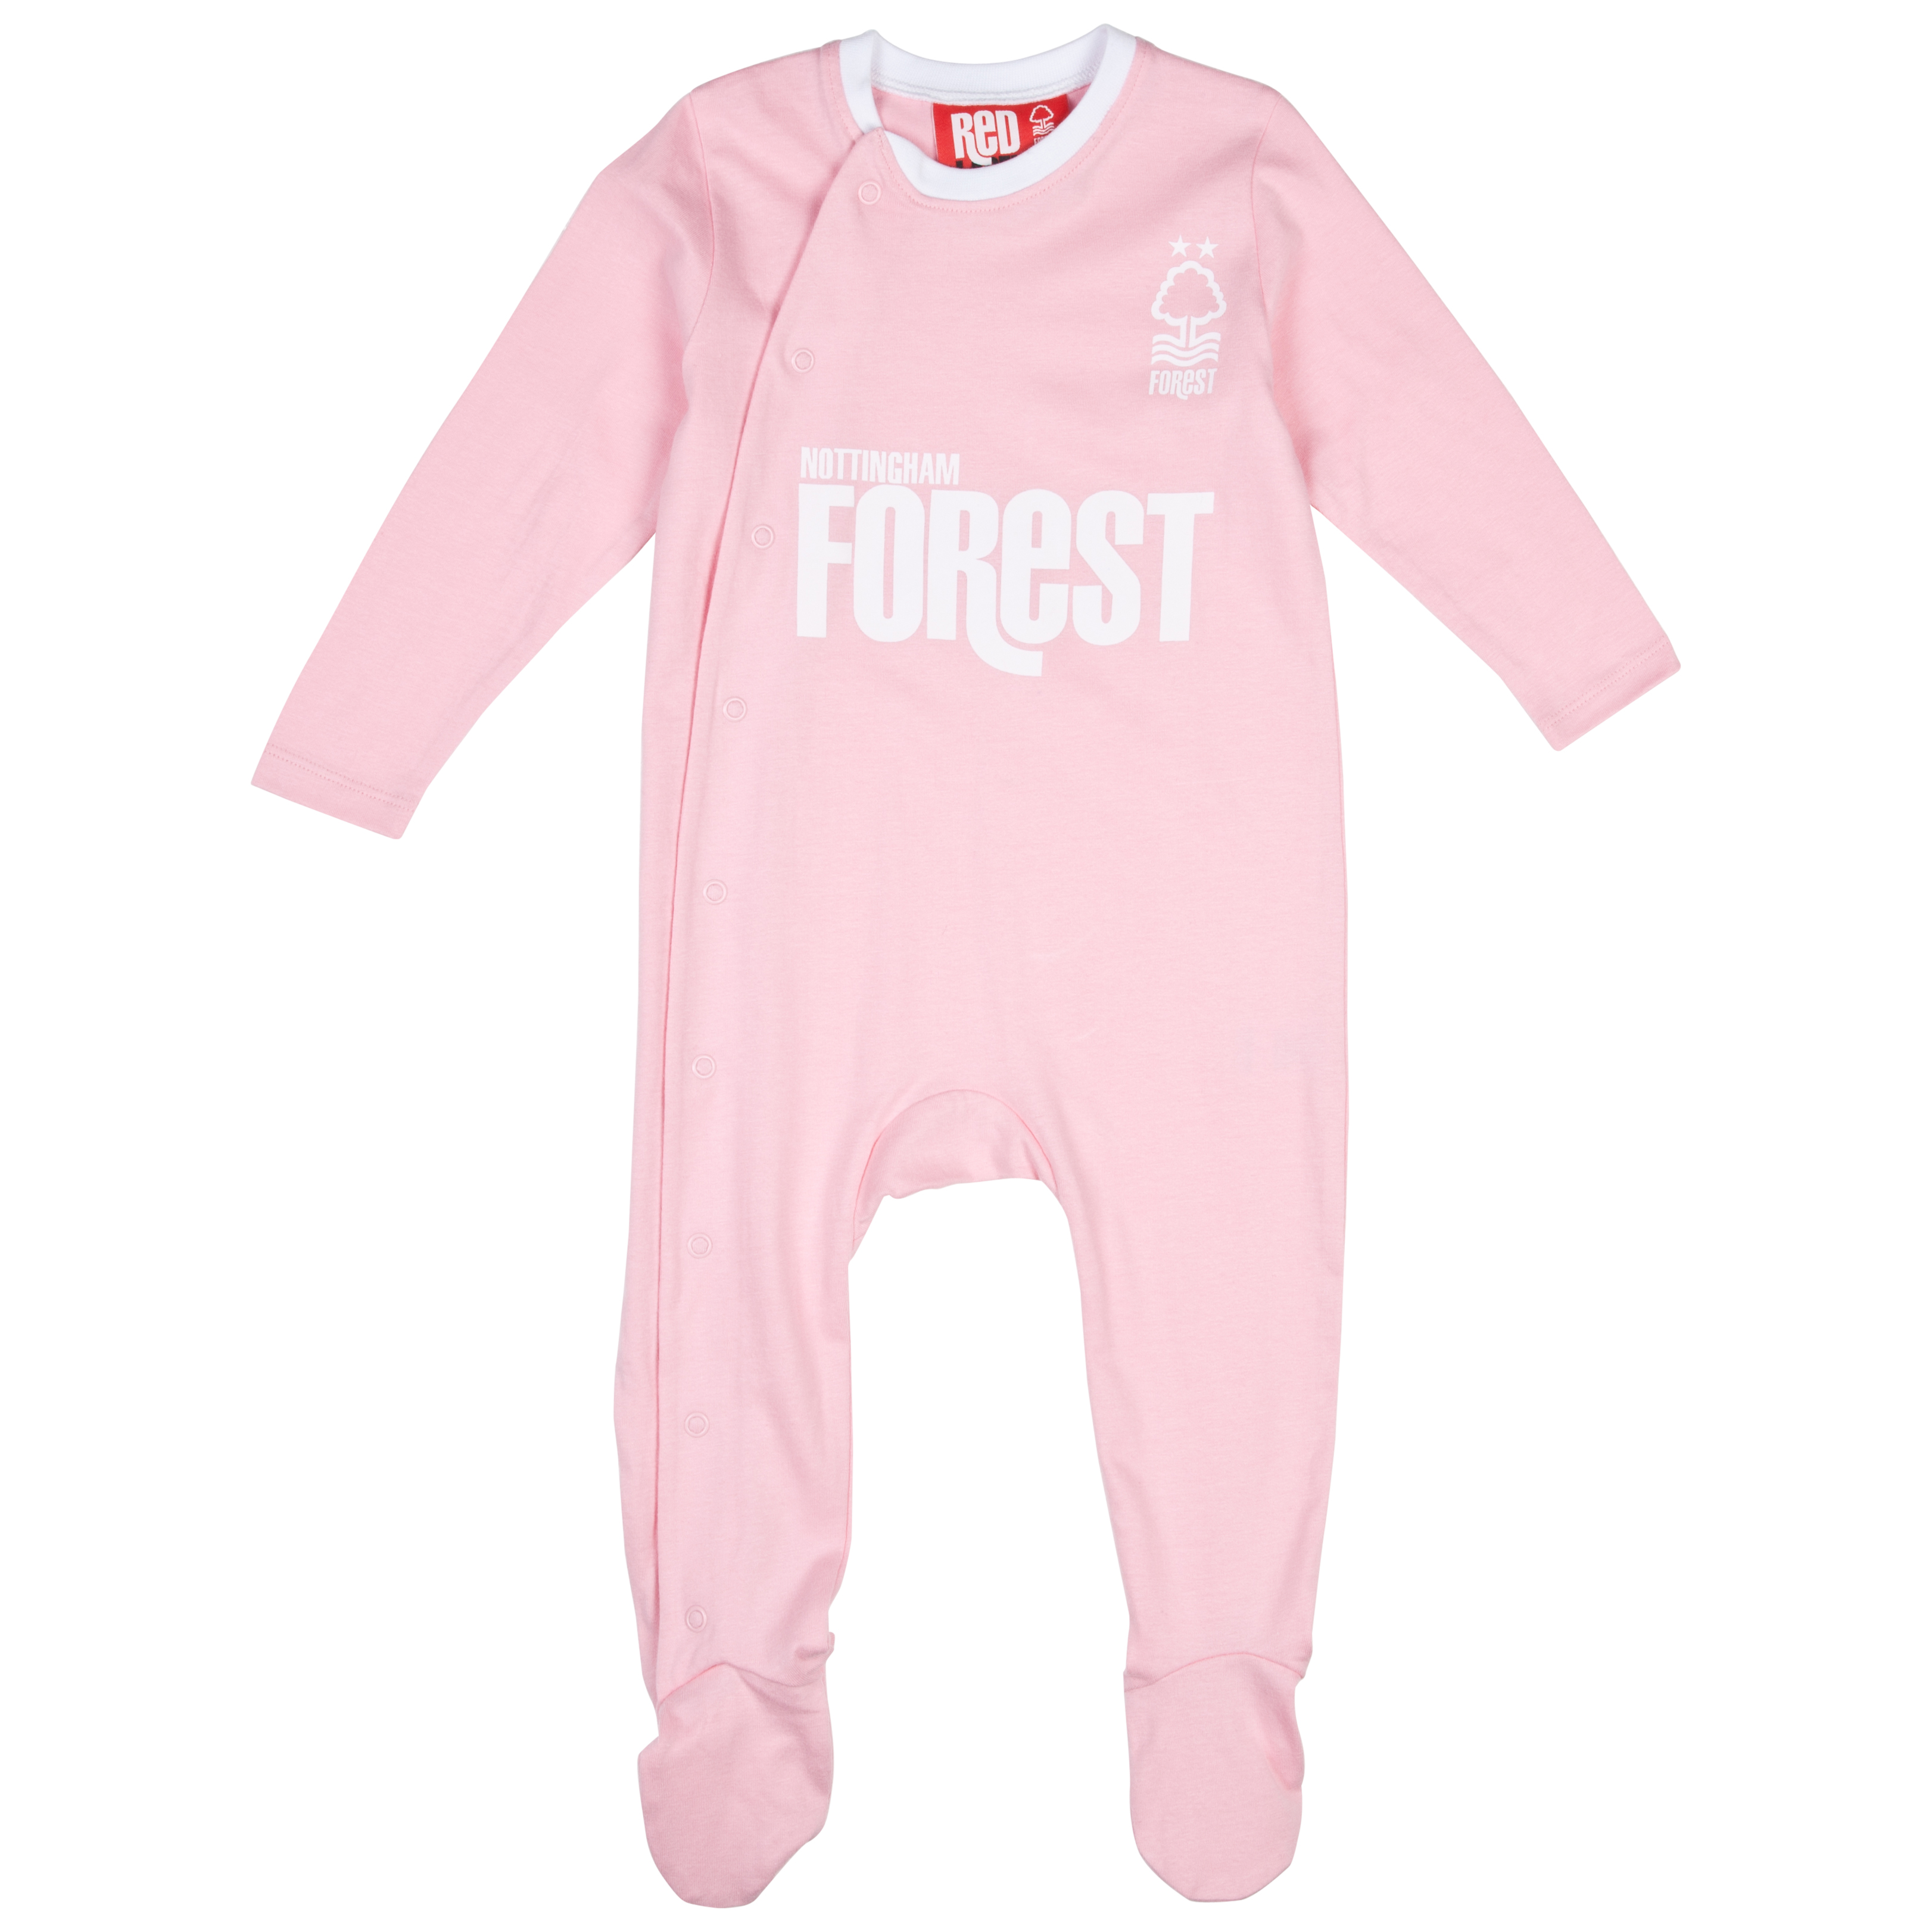 Nottingham Forest 12/13 Kit Sleepsuit Pink Baby